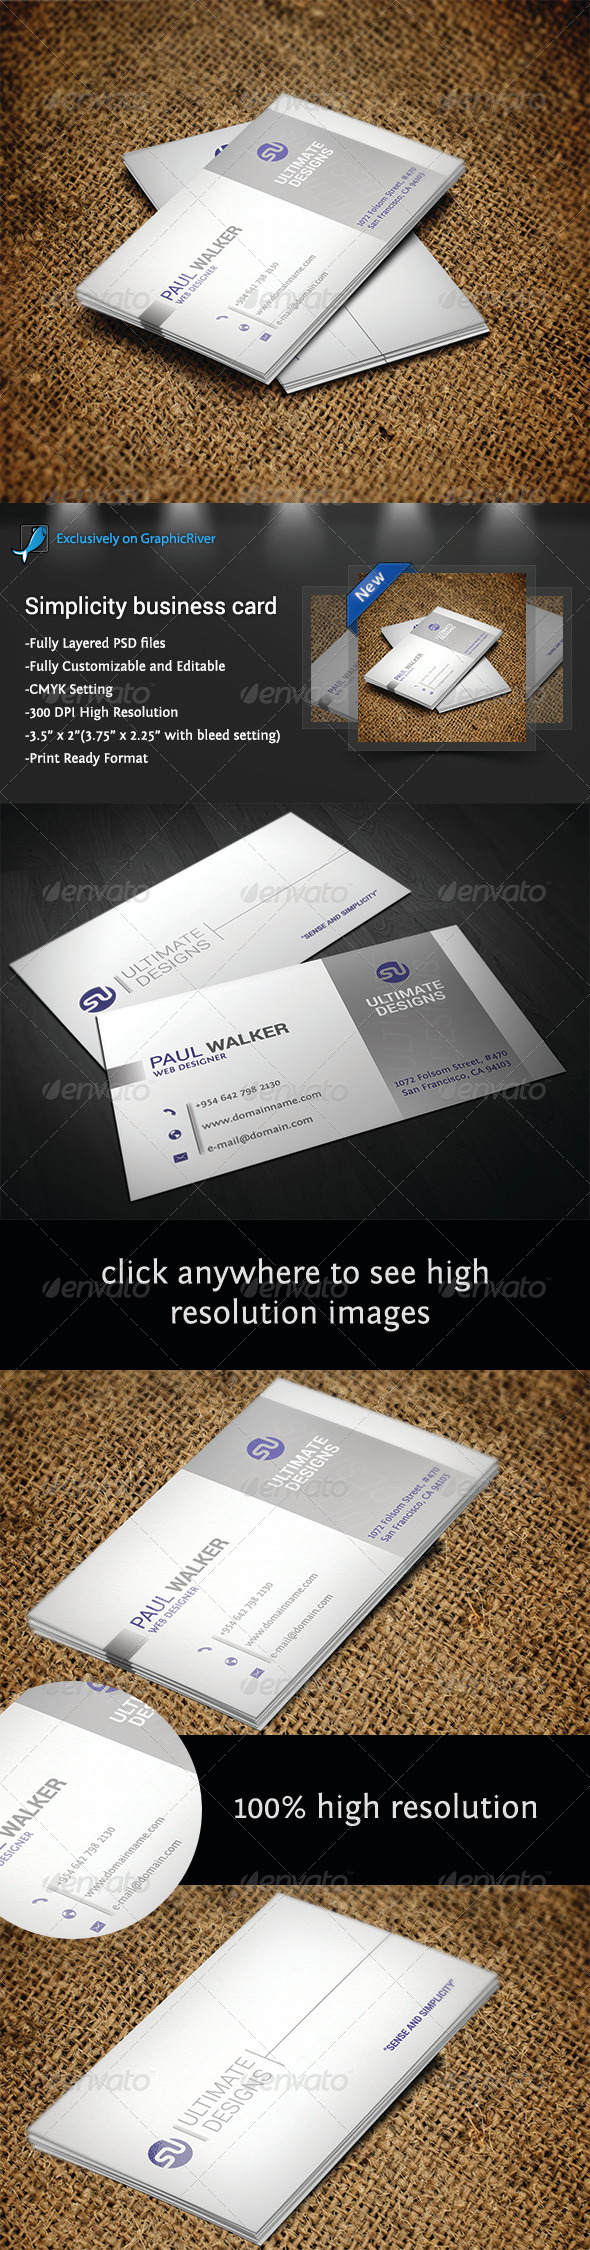 Simplicity Business Card - Business Cards Print Templates